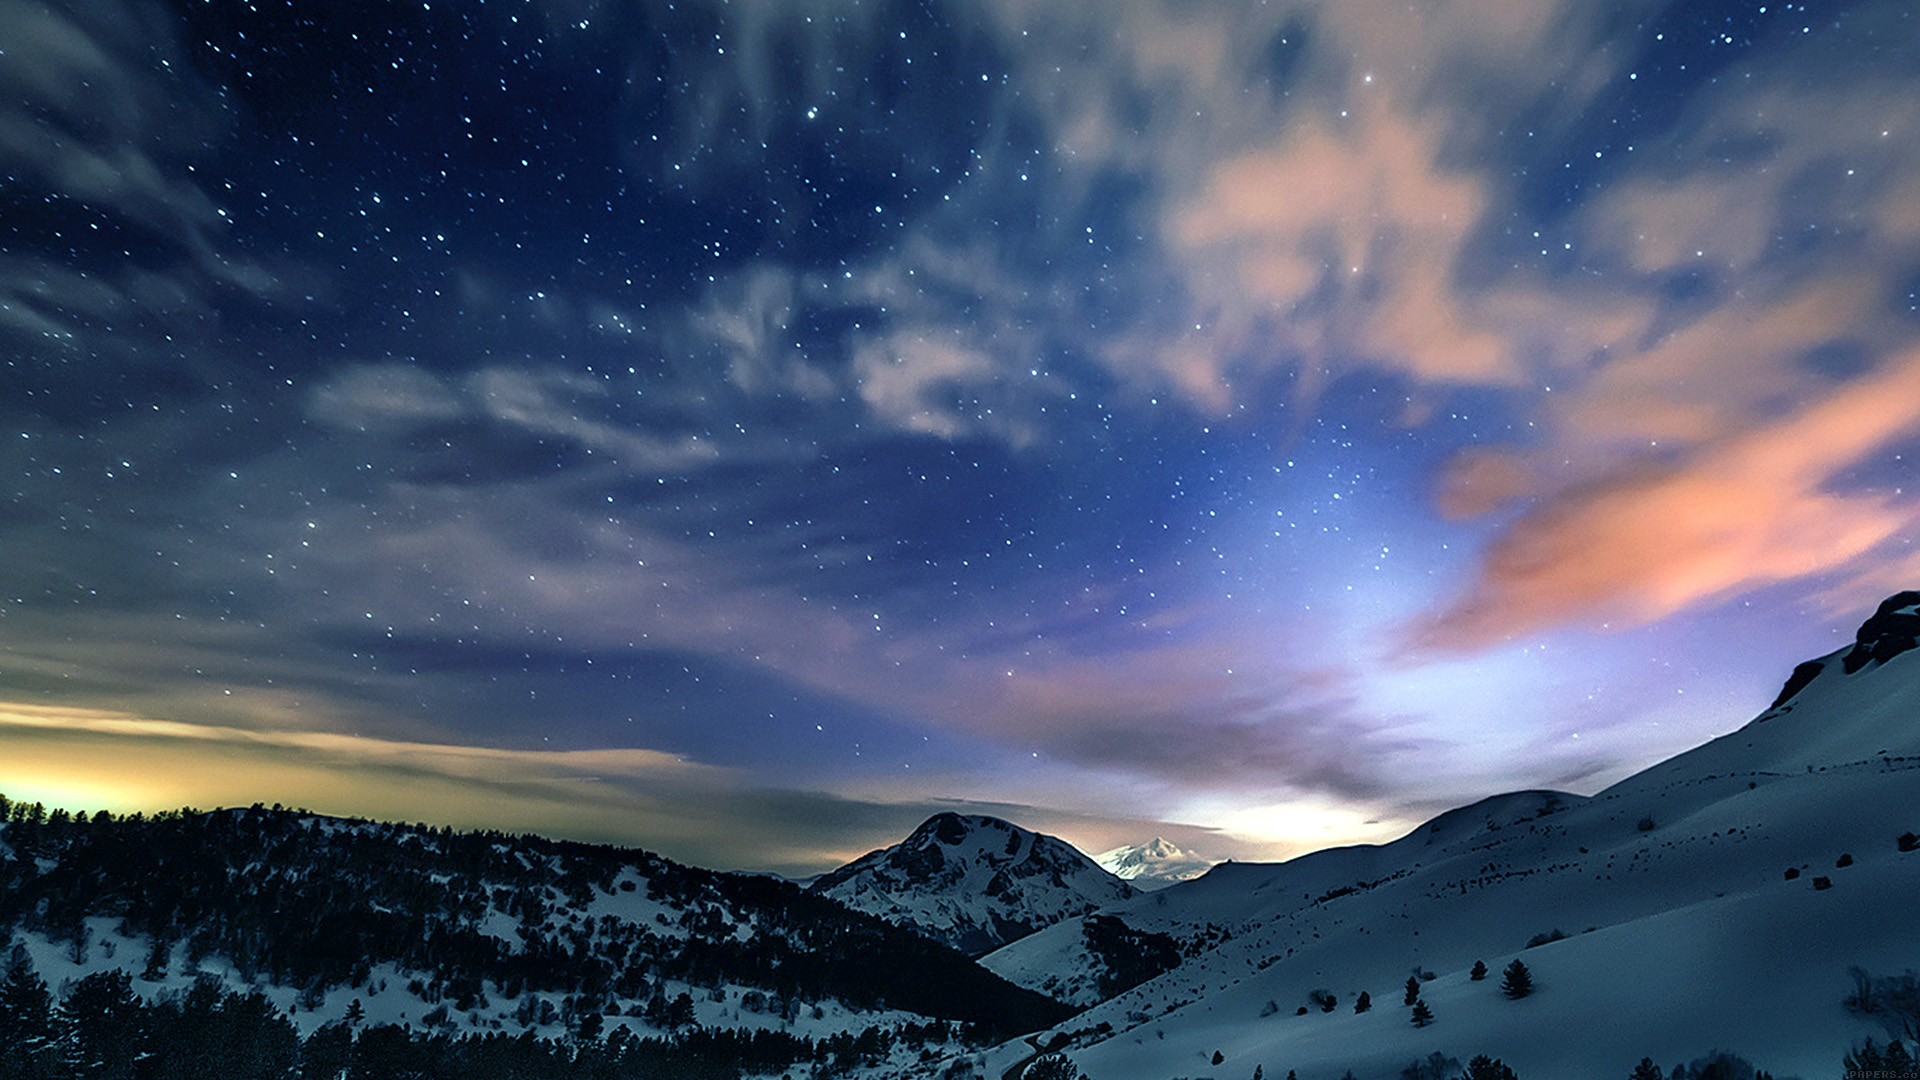 Christmas Wallpaper 3d For Windows 7 Mk78 Aurora Star Sky Snow Mountain Winter Nature Papers Co